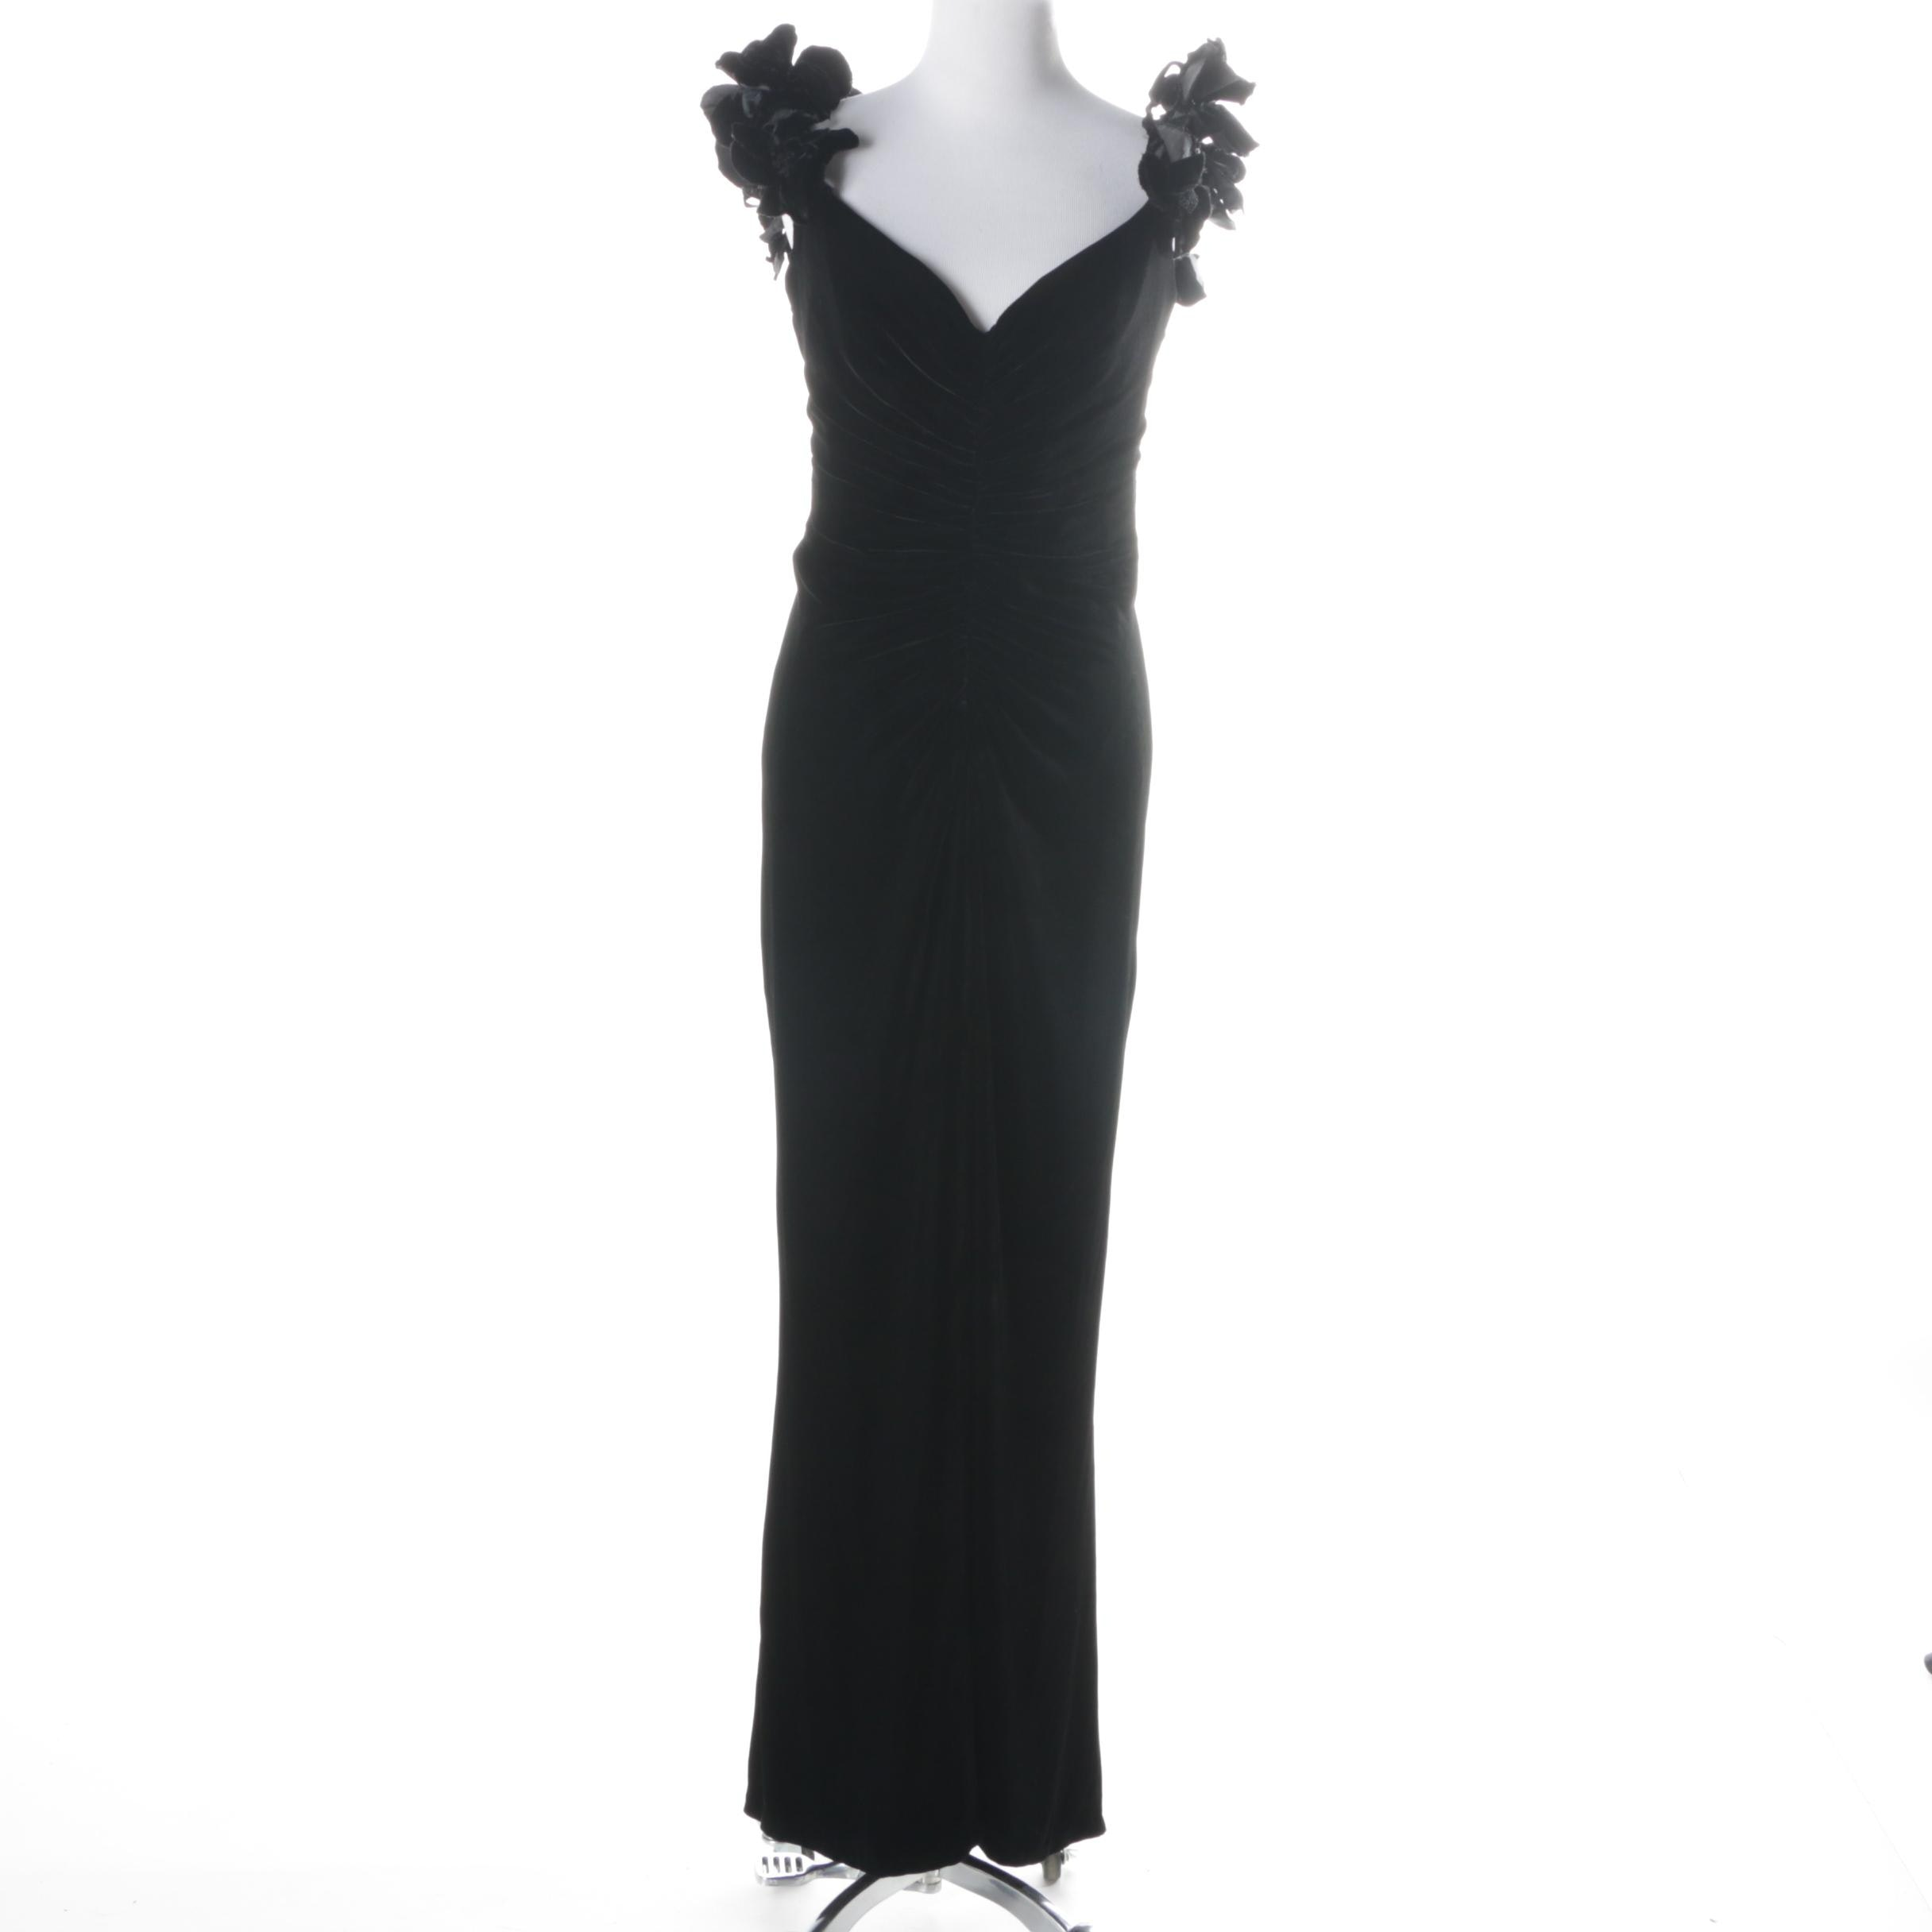 Bellville Sassoon Lorcan Mullany Black Velvet Gown